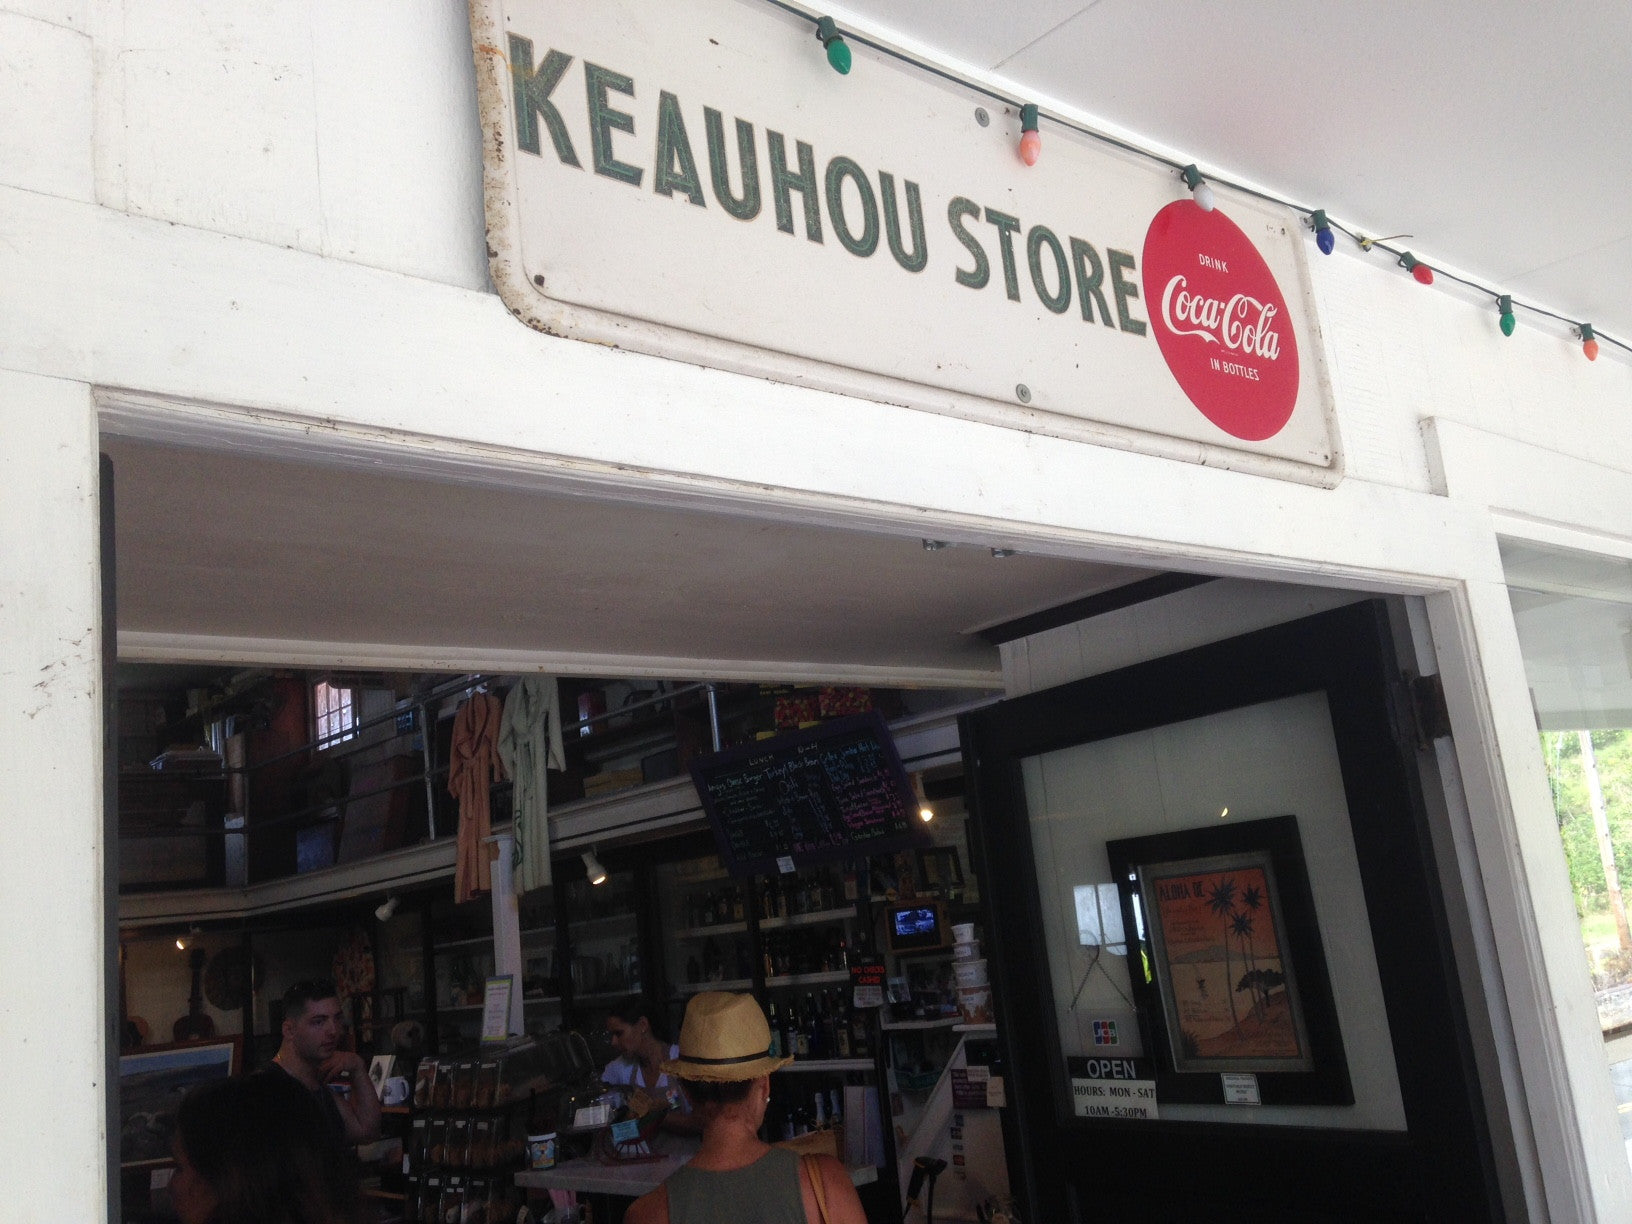 The Keauhou Store - A Little Slice of History